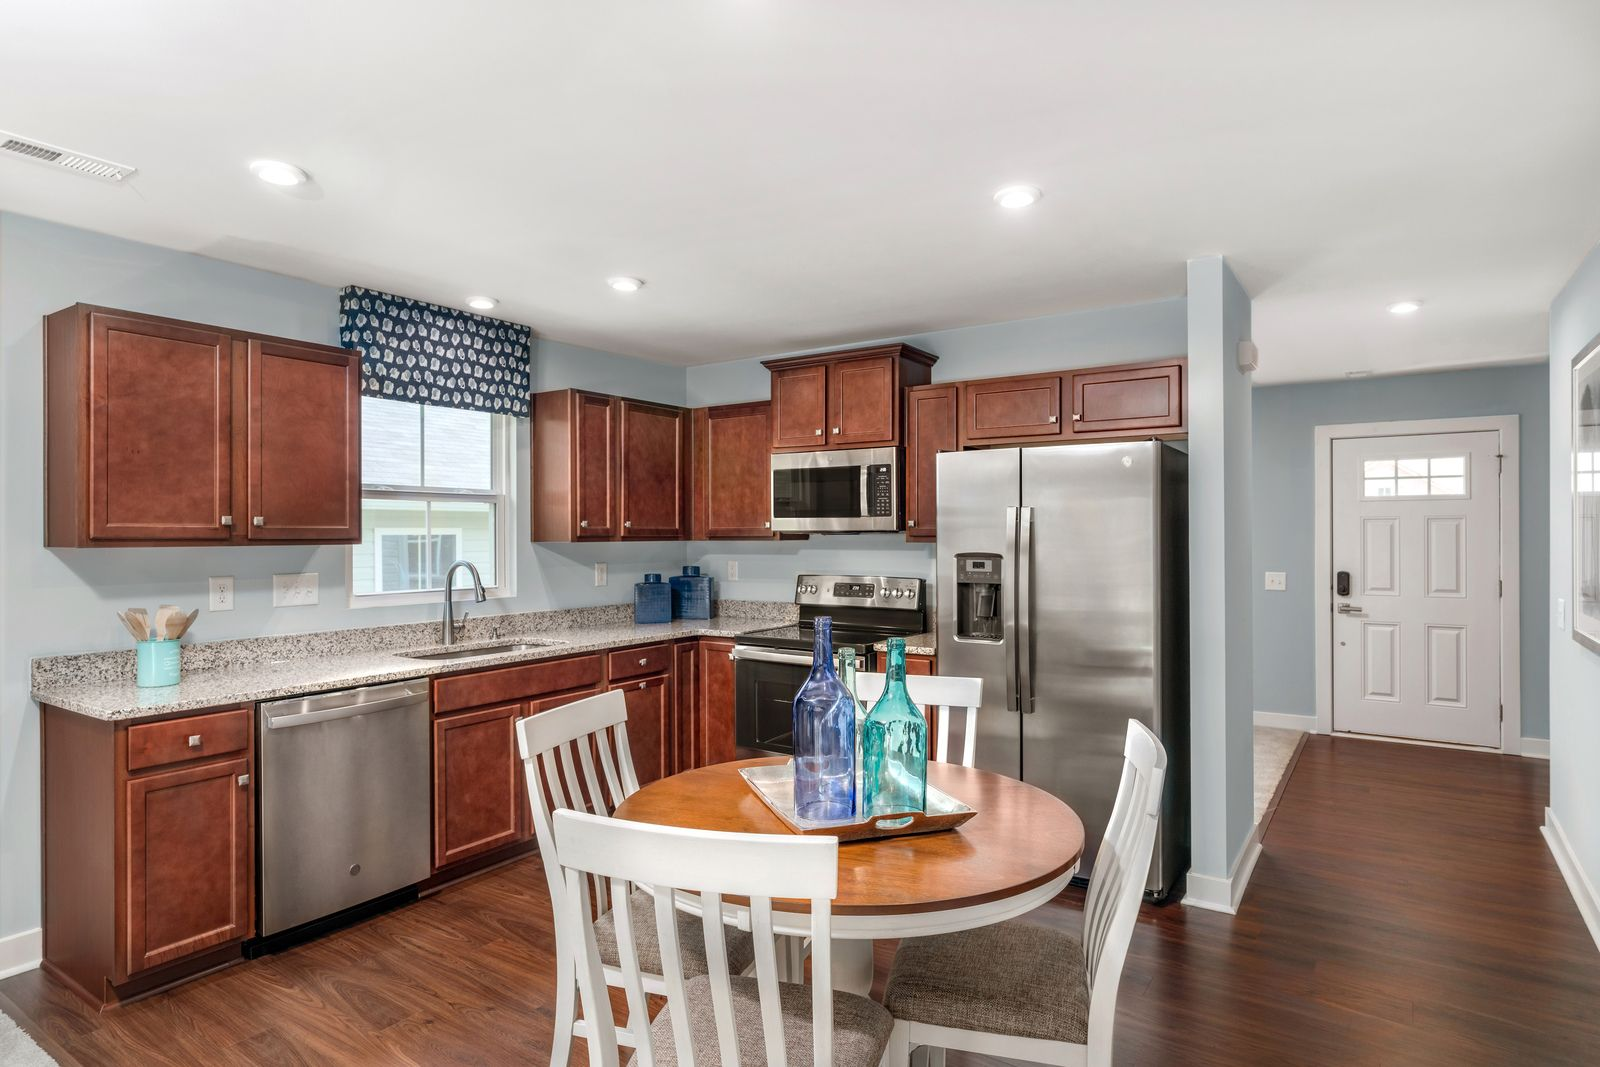 Kitchen featured in the Aruba Bay By Ryan Homes in Cincinnati, OH